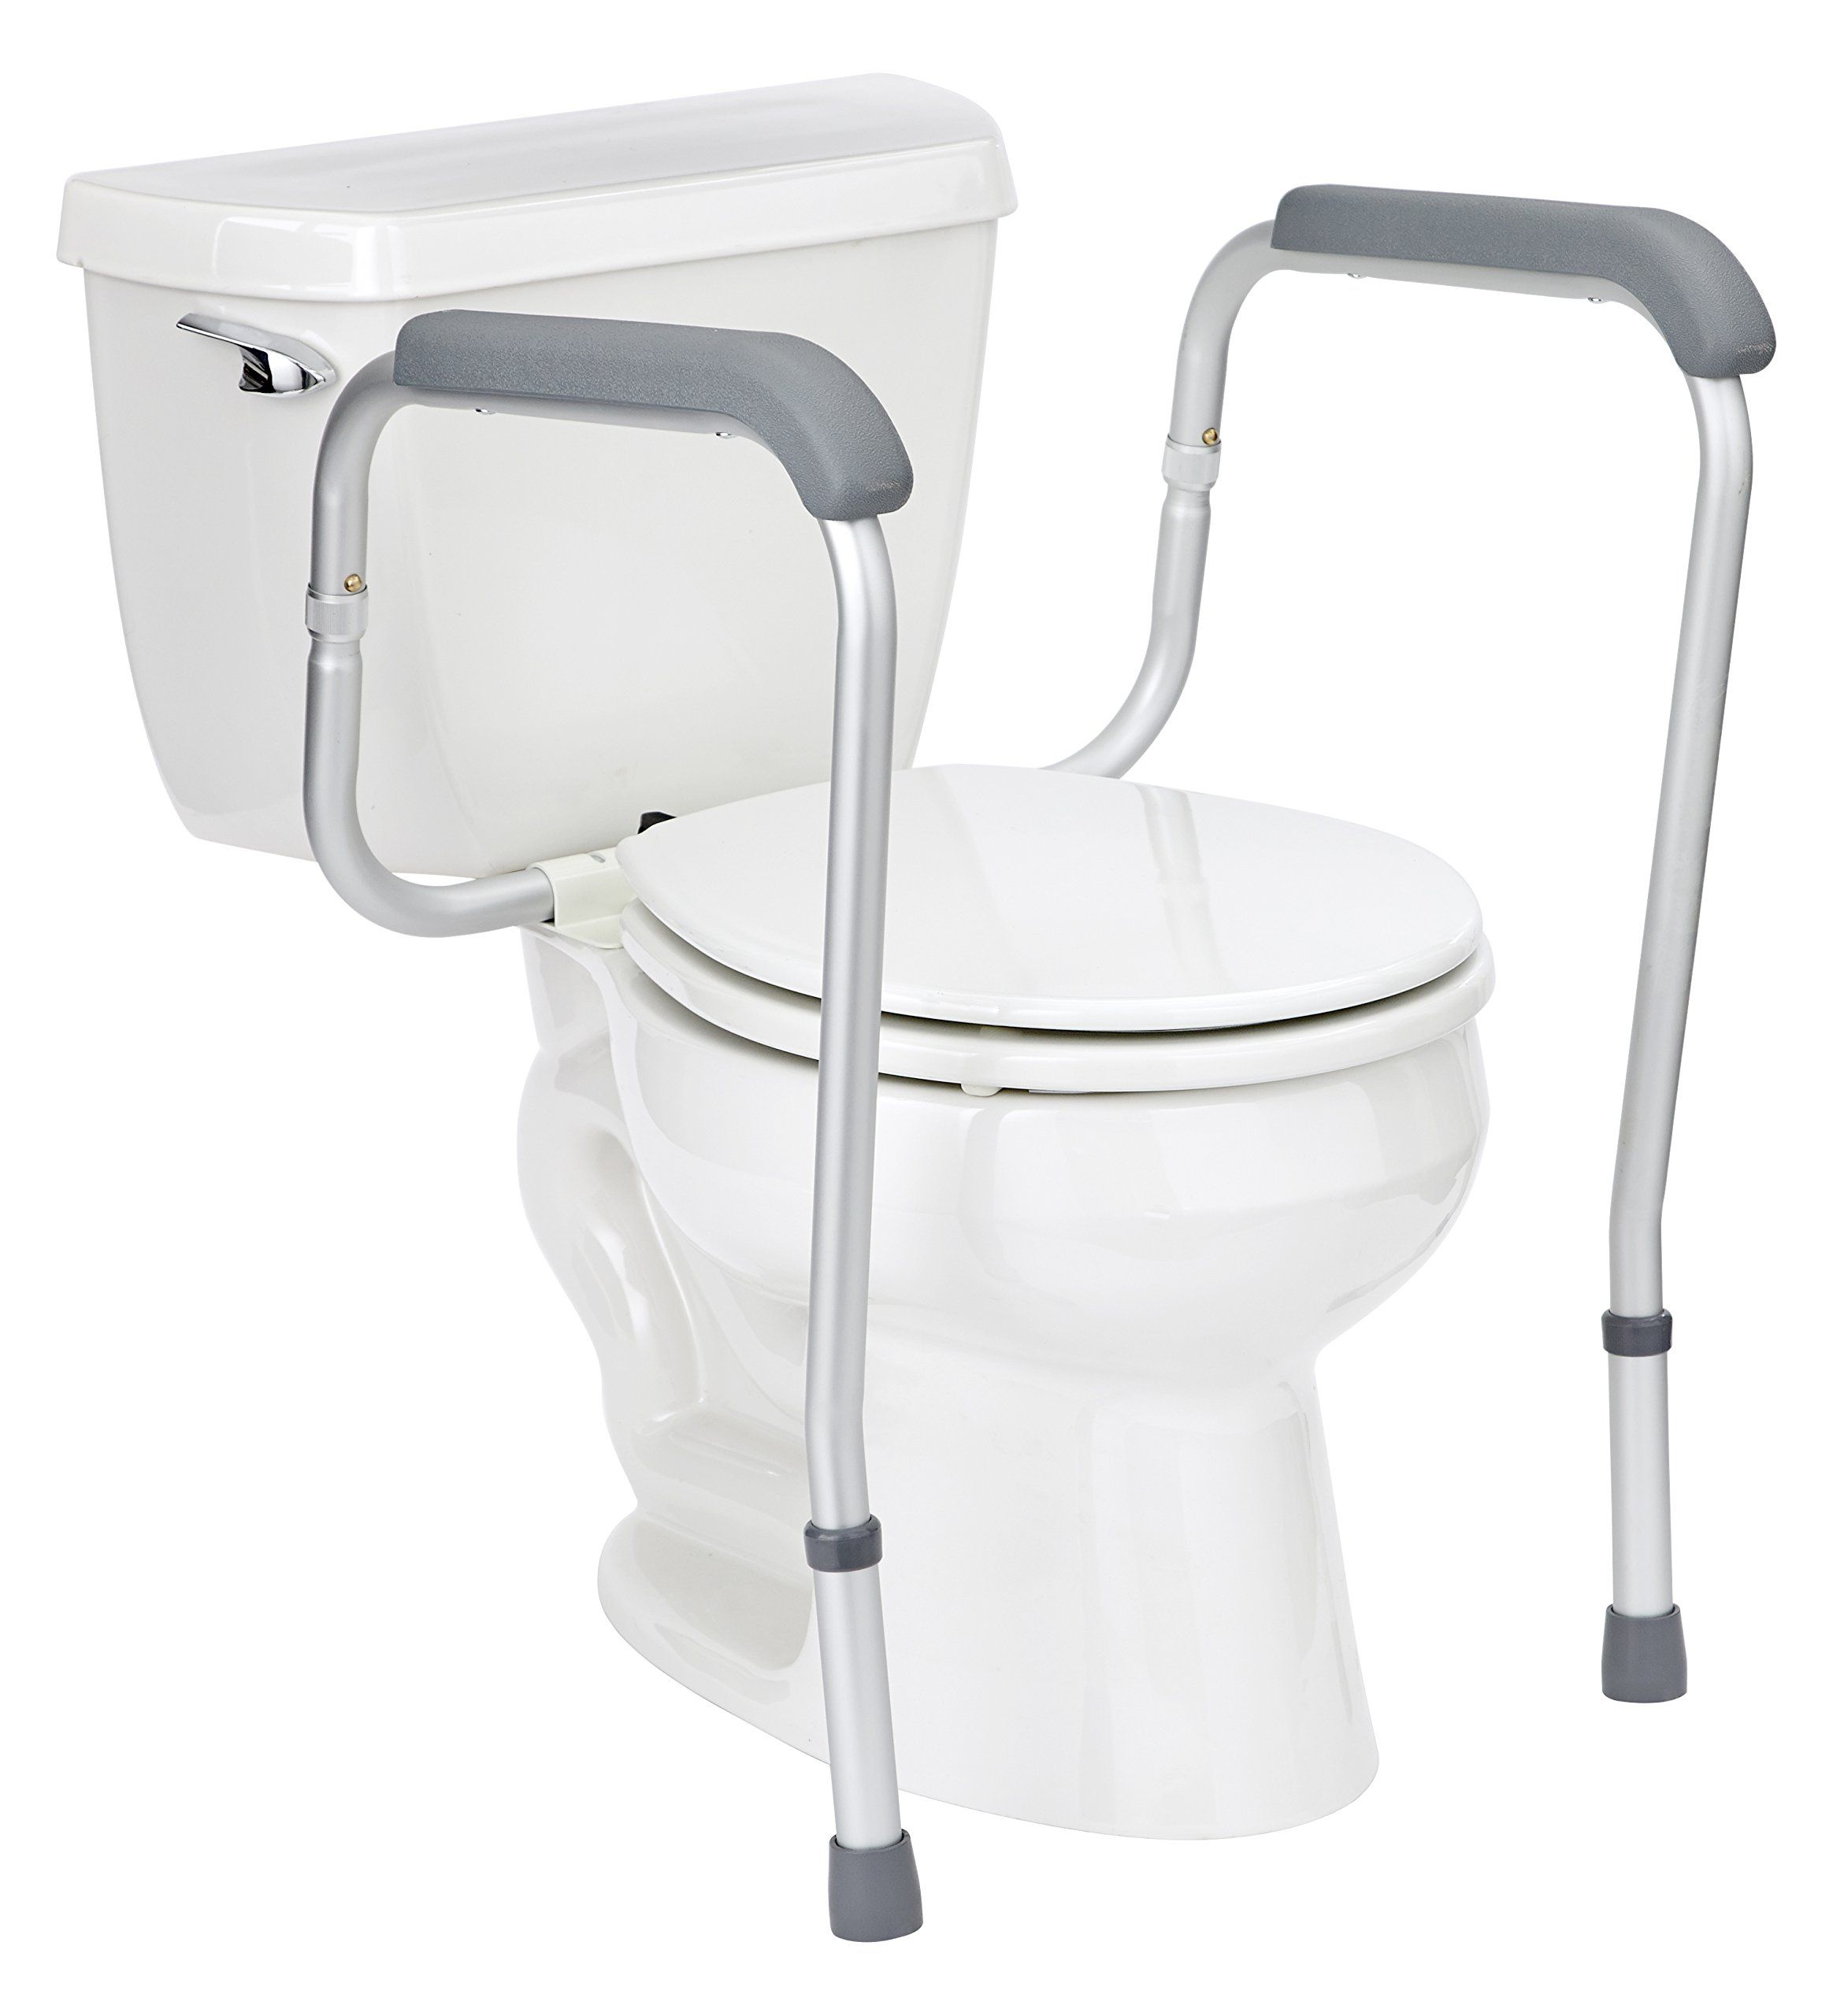 HandicapToilets Toilet Bidet Combo: Best Choice for Disabled ...